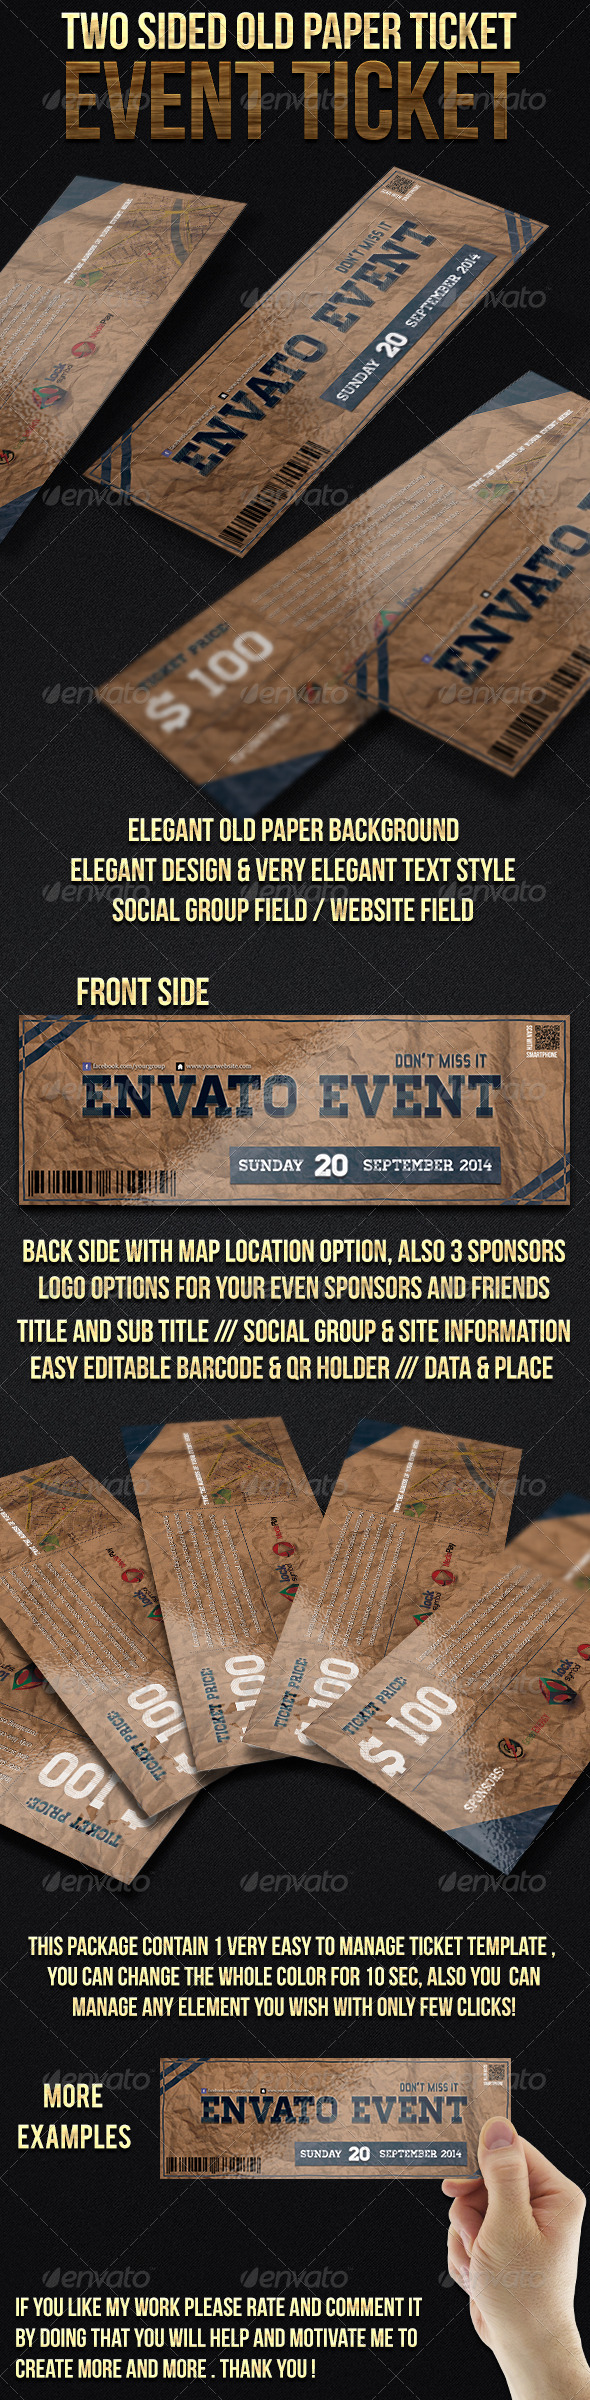 GraphicRiver Two Sided Old Paper Event Ticket 6655844